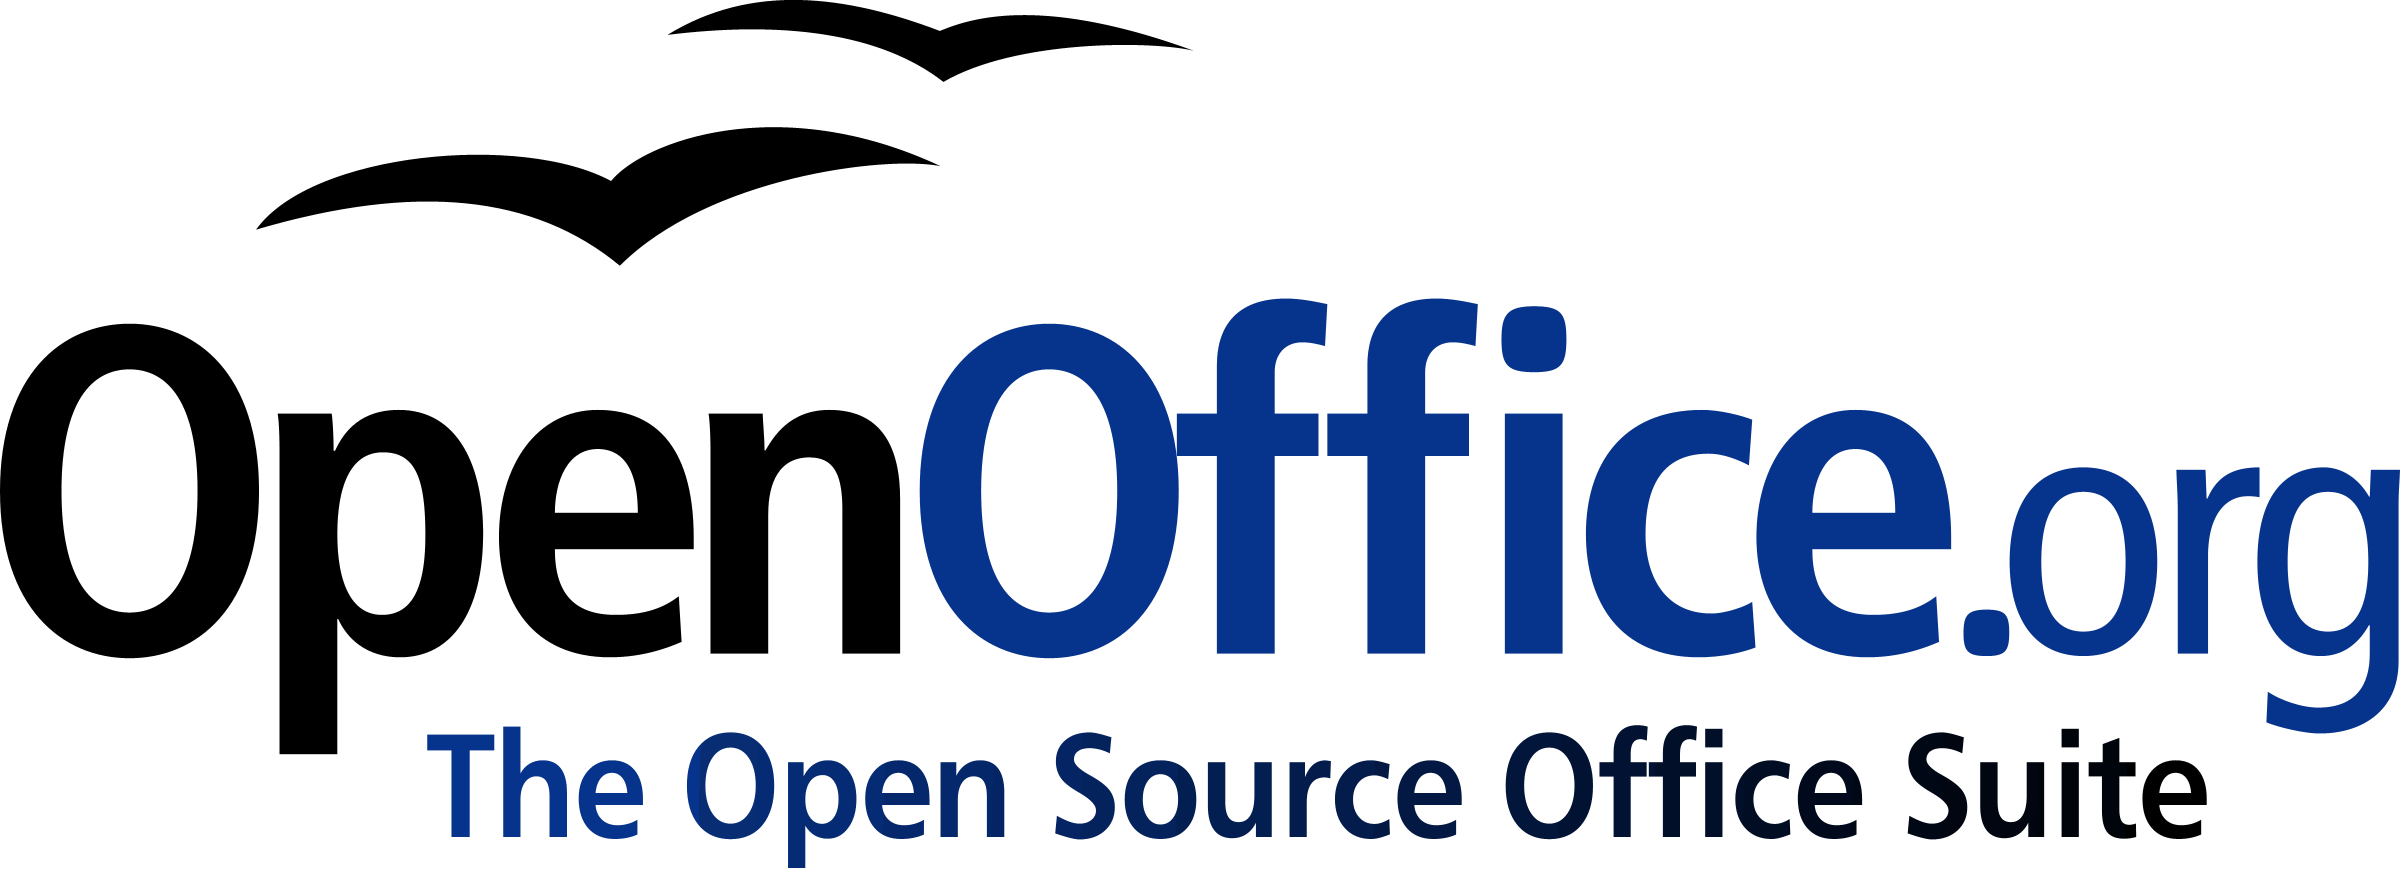 apache openoffice templates | things you might need, Presentation templates